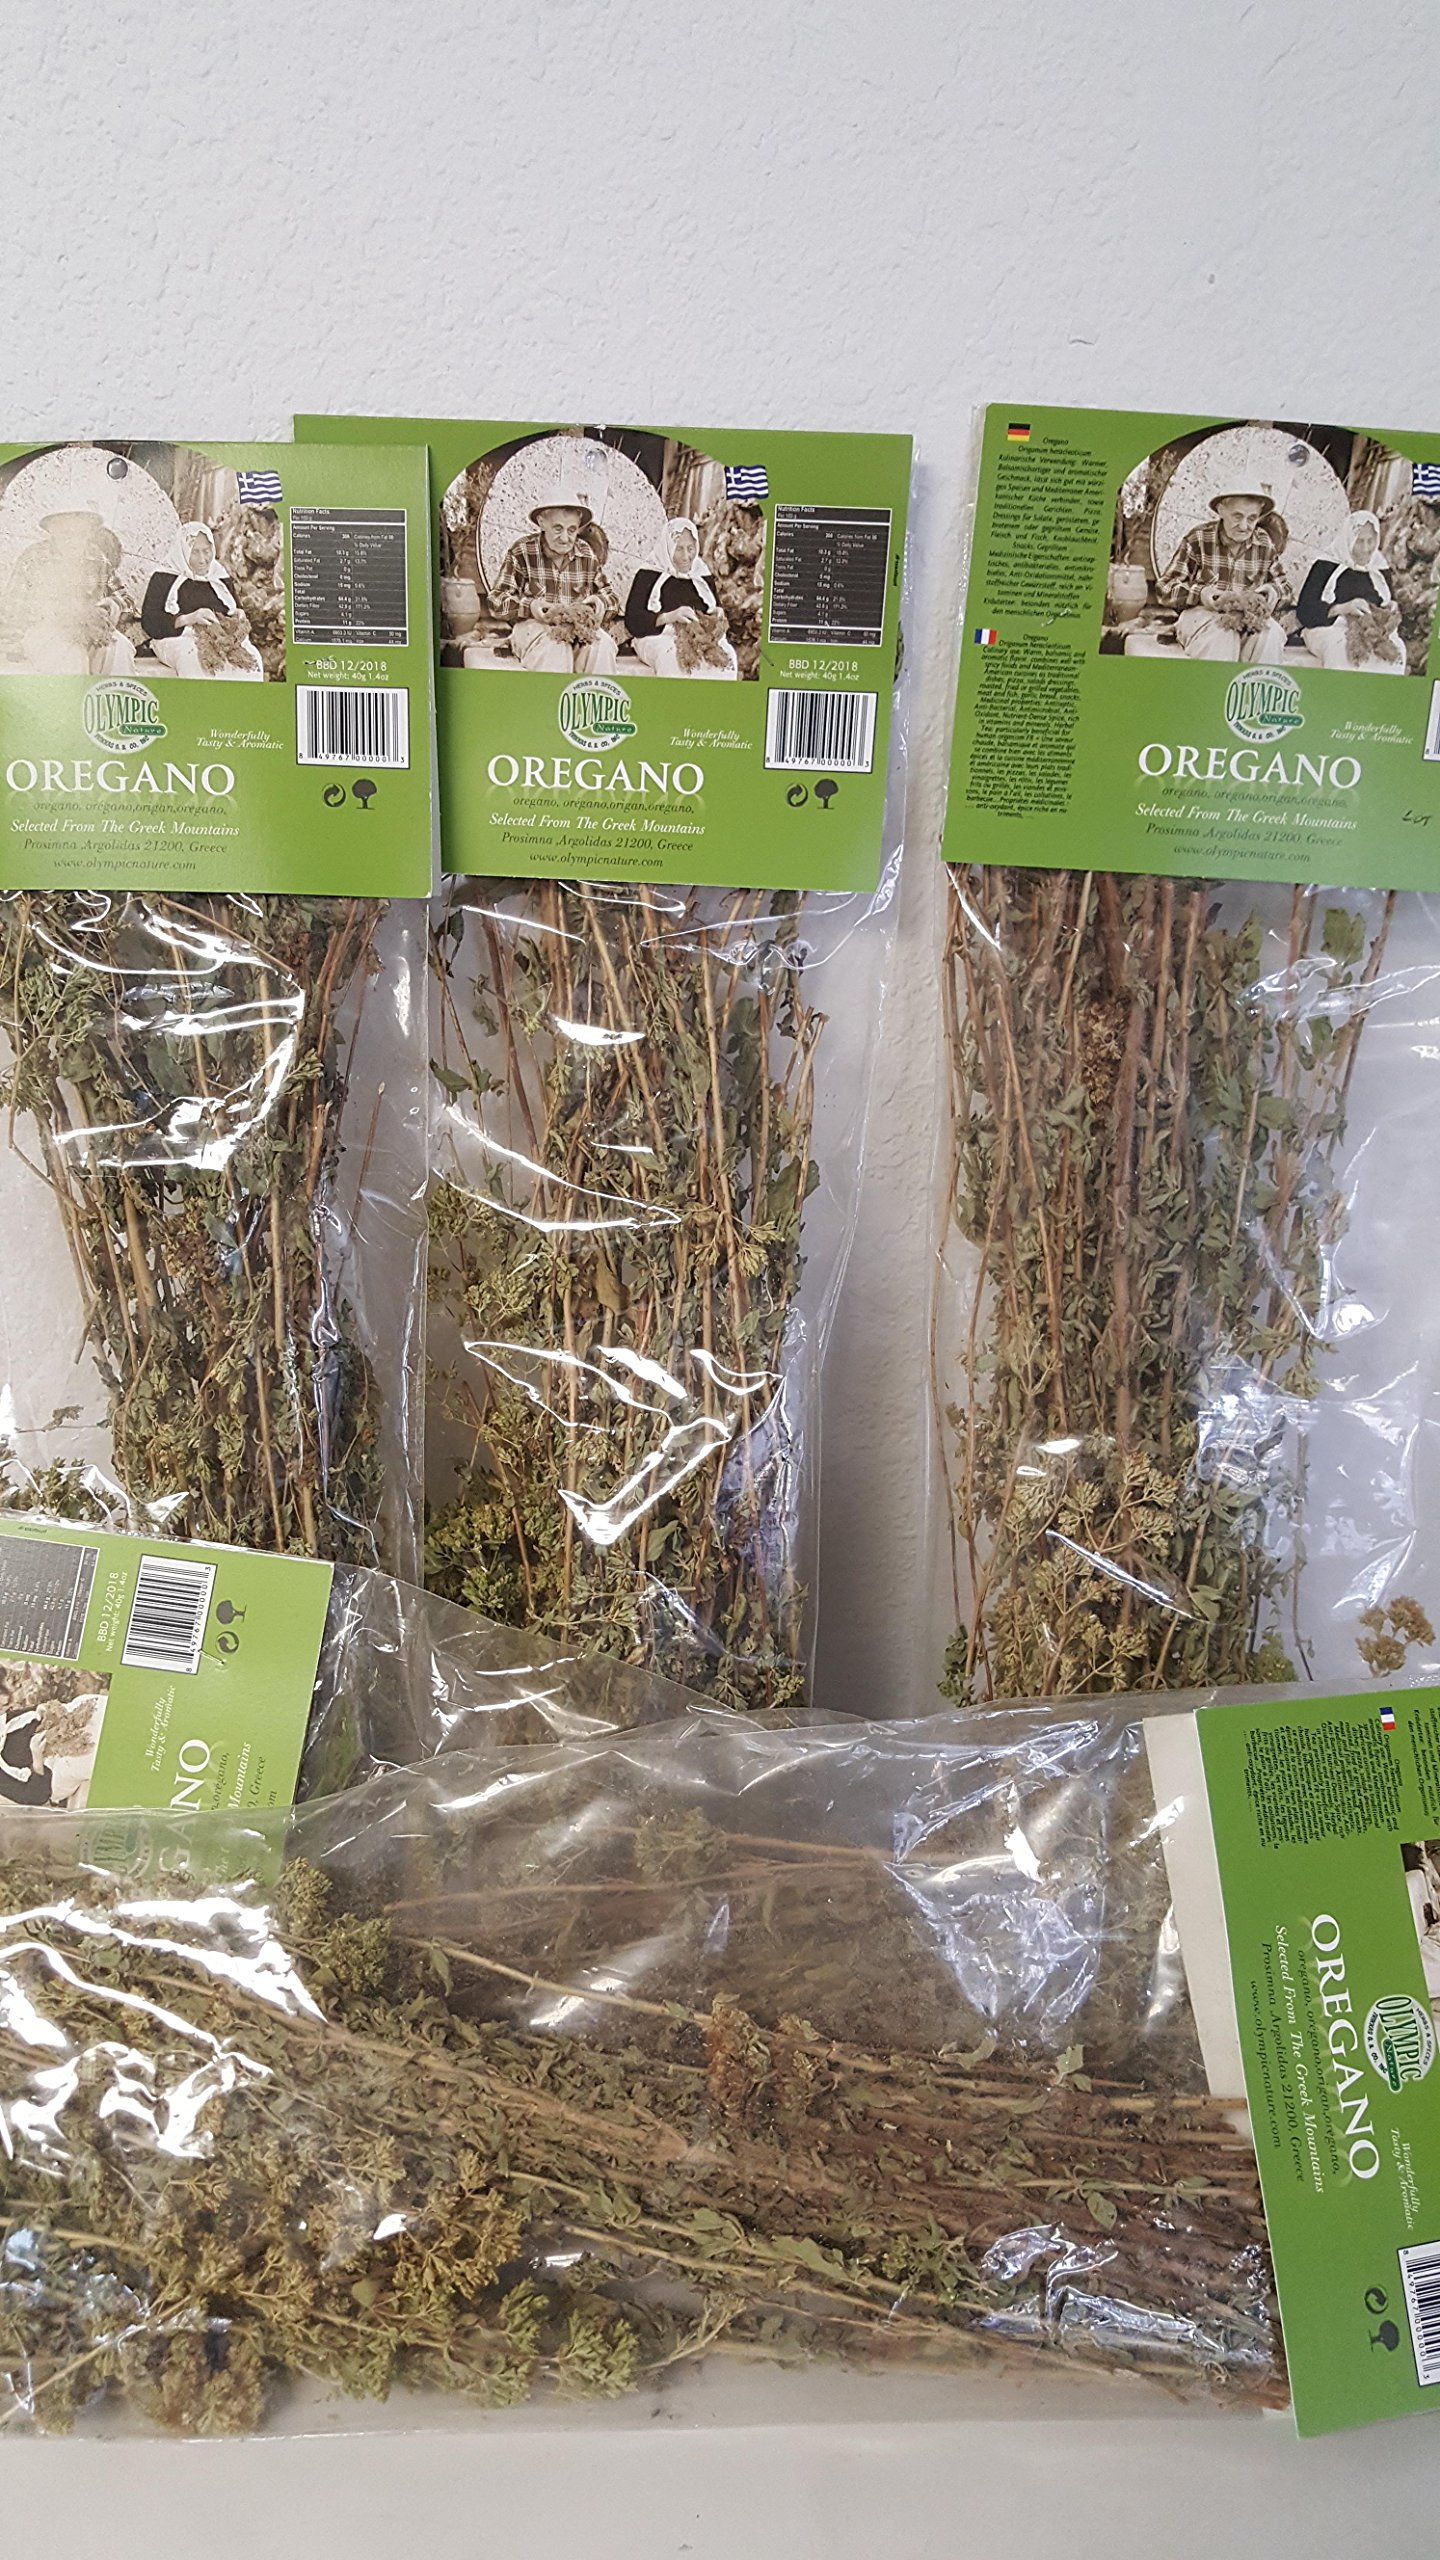 DRIED WHOLE BUNCHED GREEK OREGANO LOT 7oz total (5 pack)